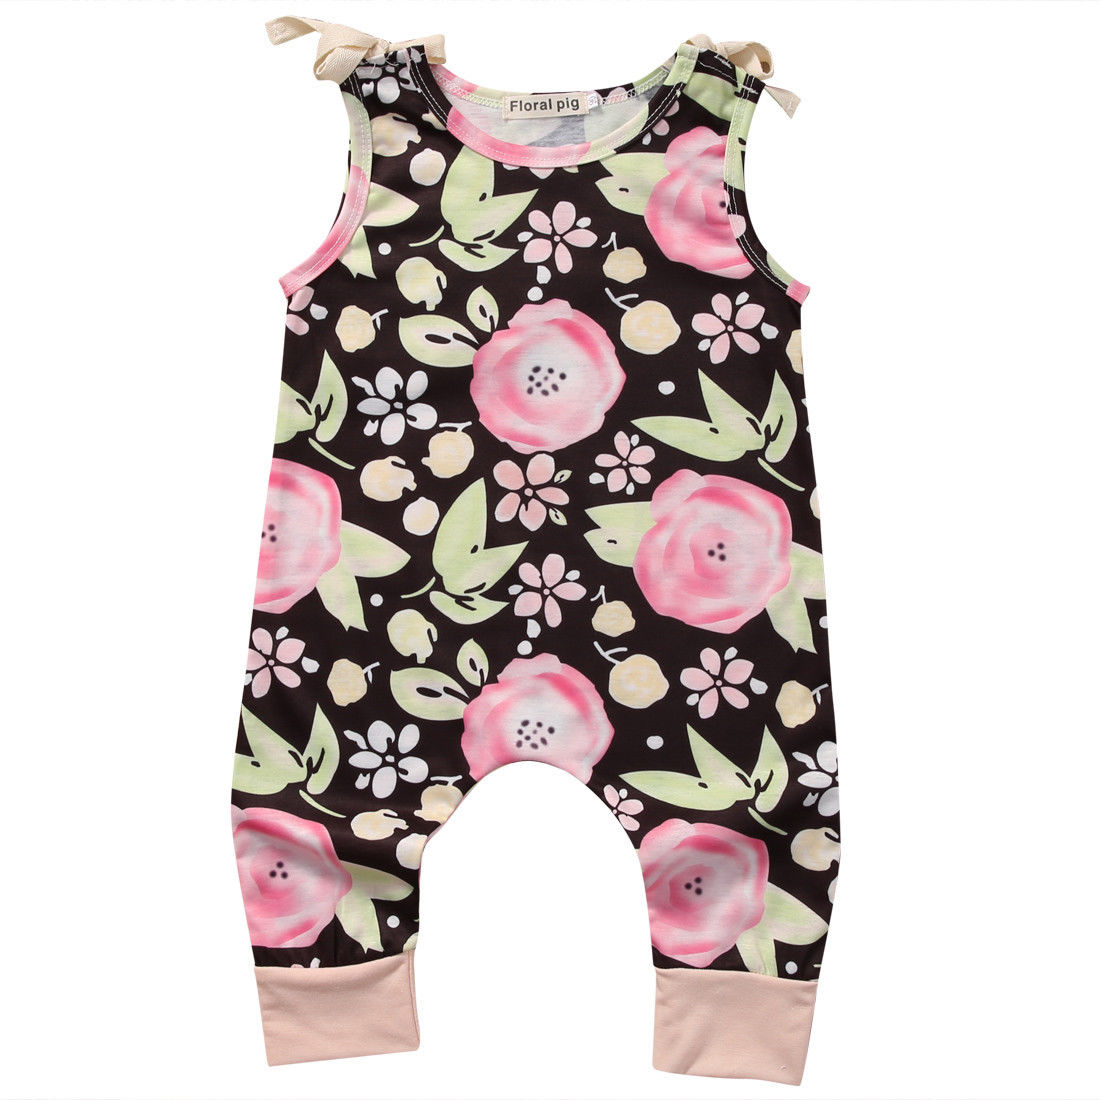 Cotton Toddler Kids Baby Girls Summer Strap Floral Romper Jumpsuit Pants Clothes Outfit infant toddler kids baby girls summer outfit cotton striped sleeveless tops dress floral short pants girls clothes sunsuit 0 4y